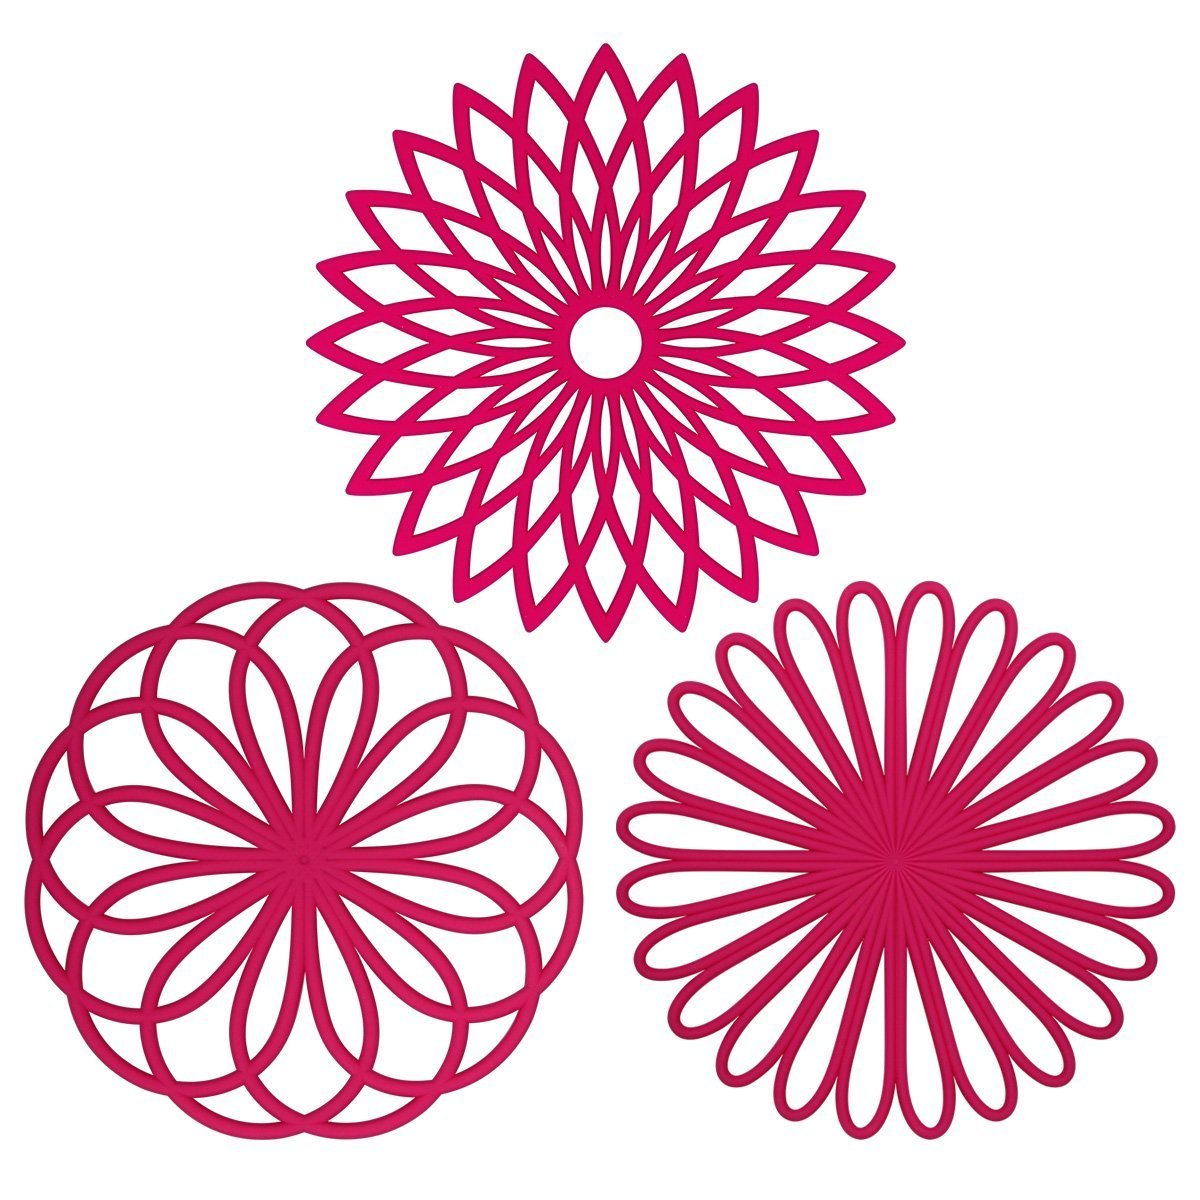 ME.FAN 3 Set Silicone MultiUse Flower Trivet Mat  Premium Quality Insulated Flexible Durable Non Slip Coasters Hot Pads Fuscia